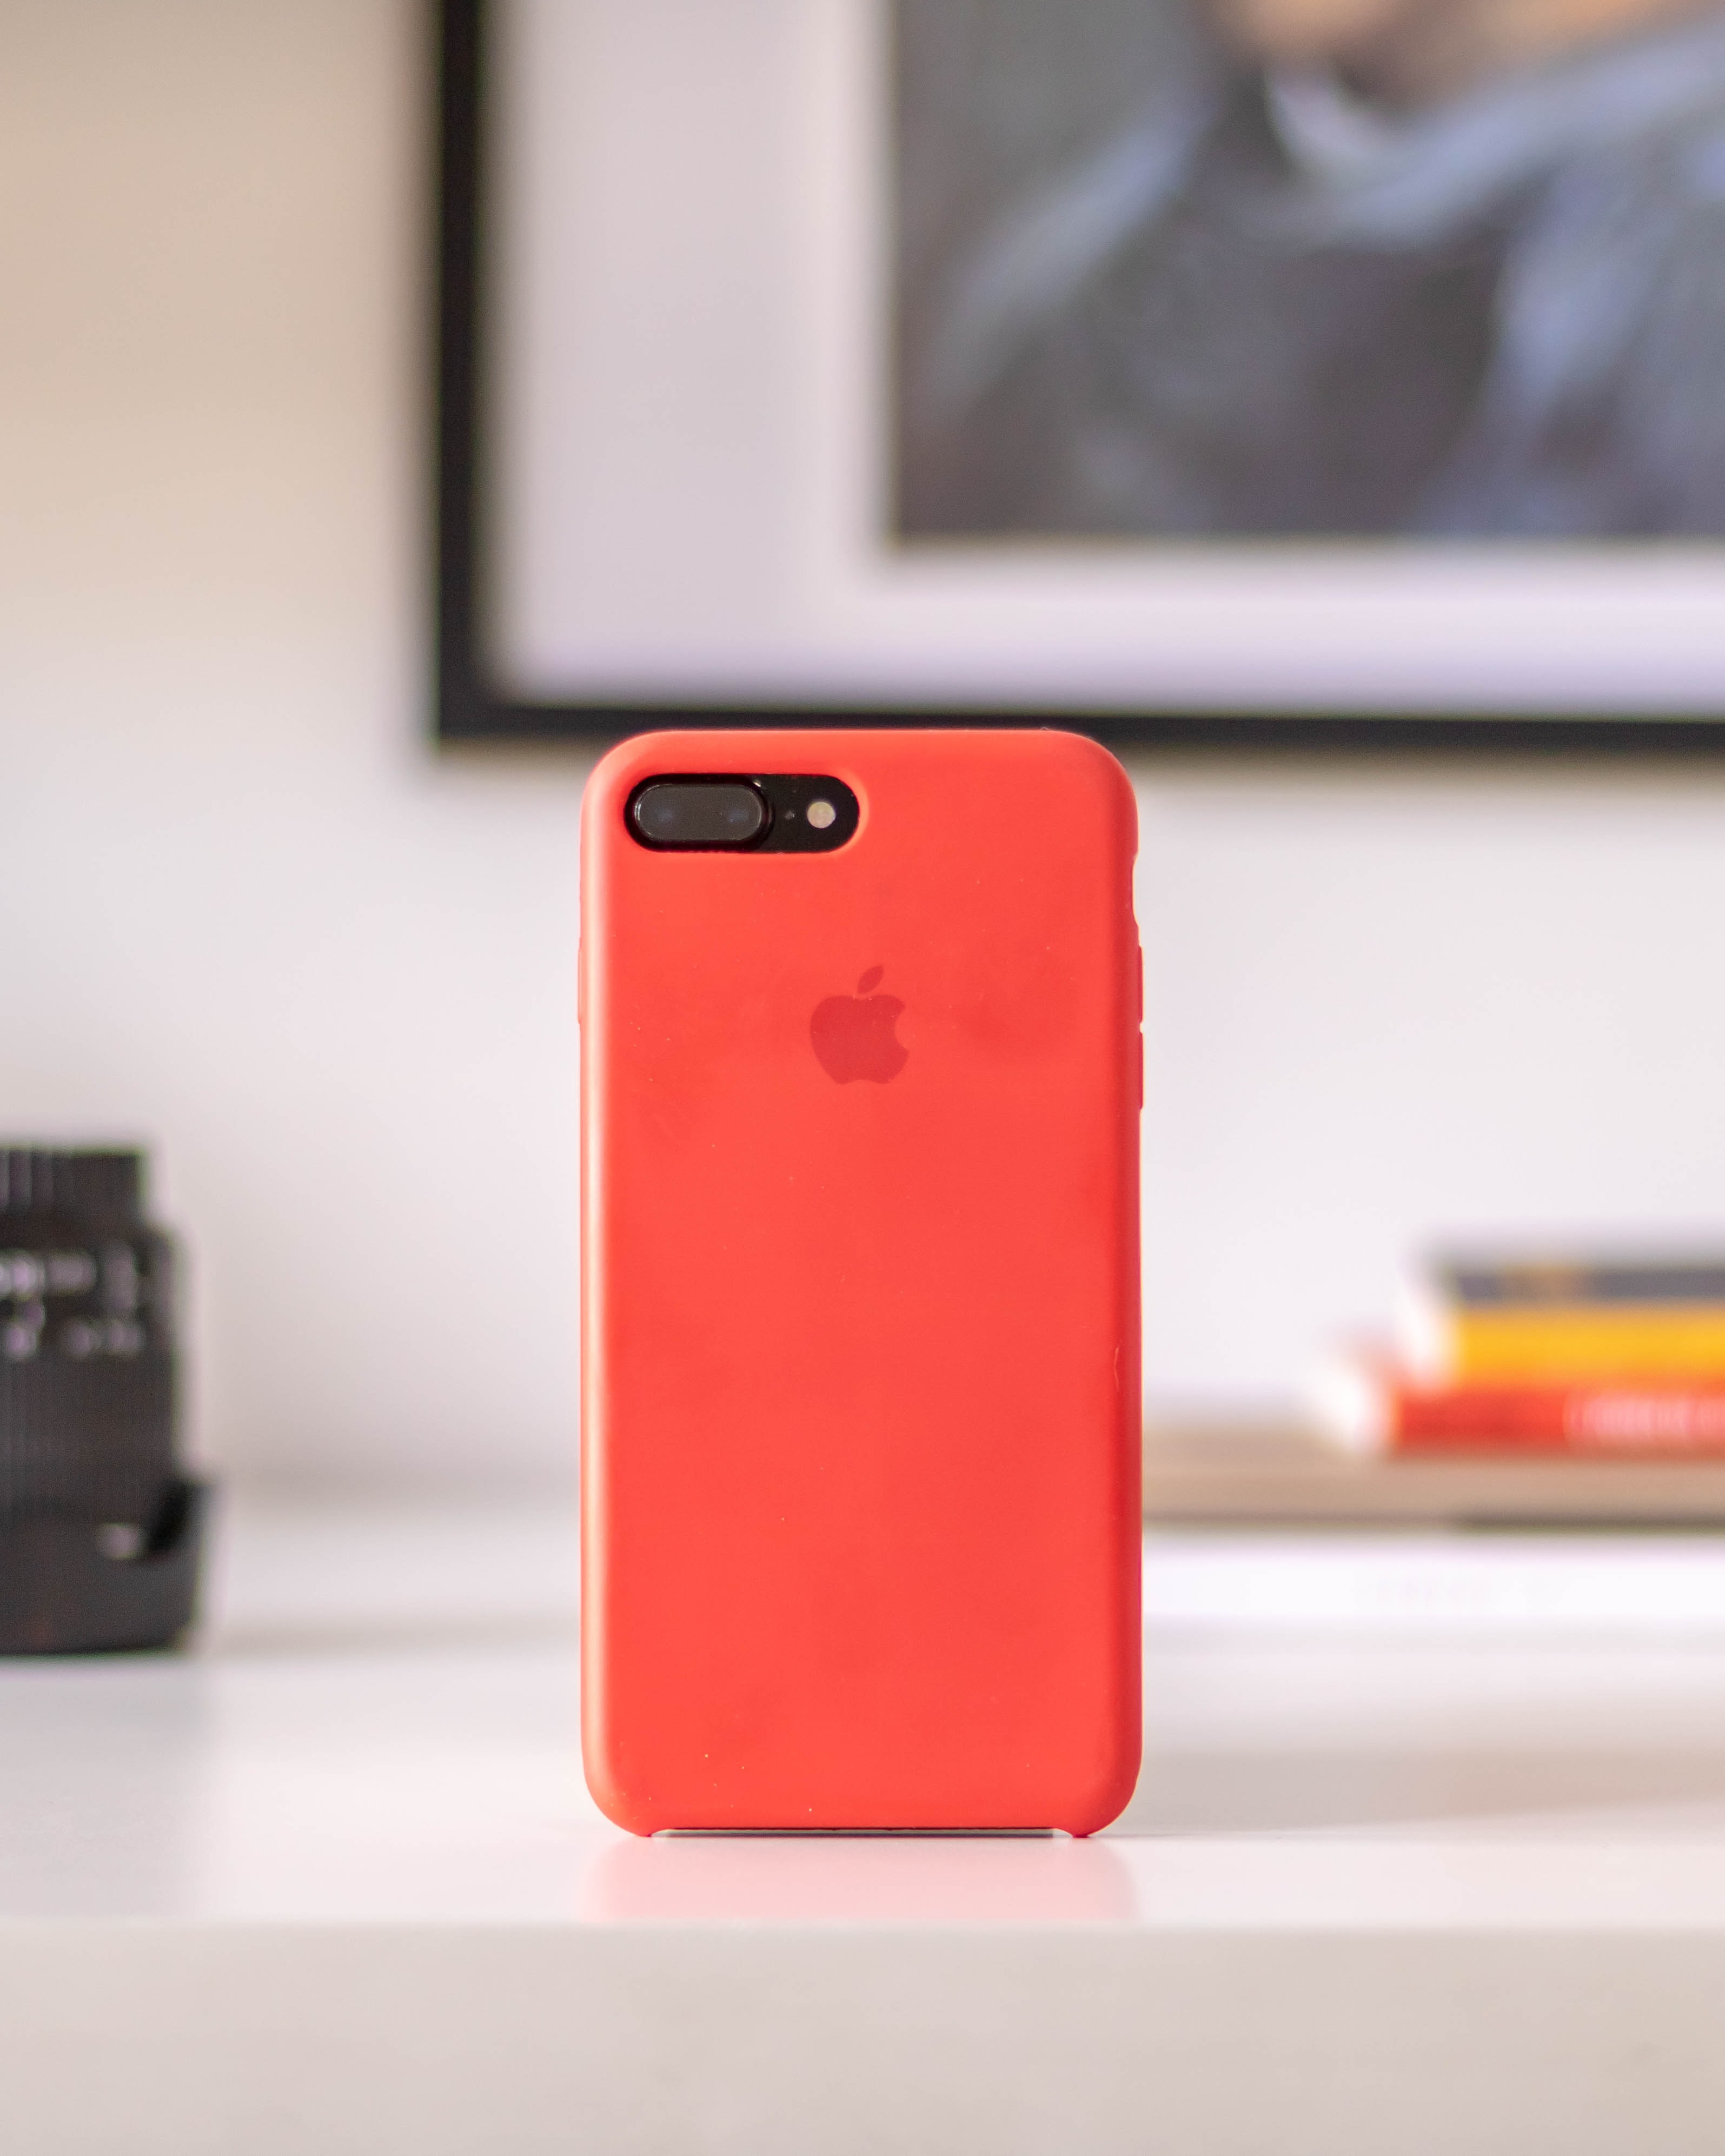 iPhone with red case on a table.